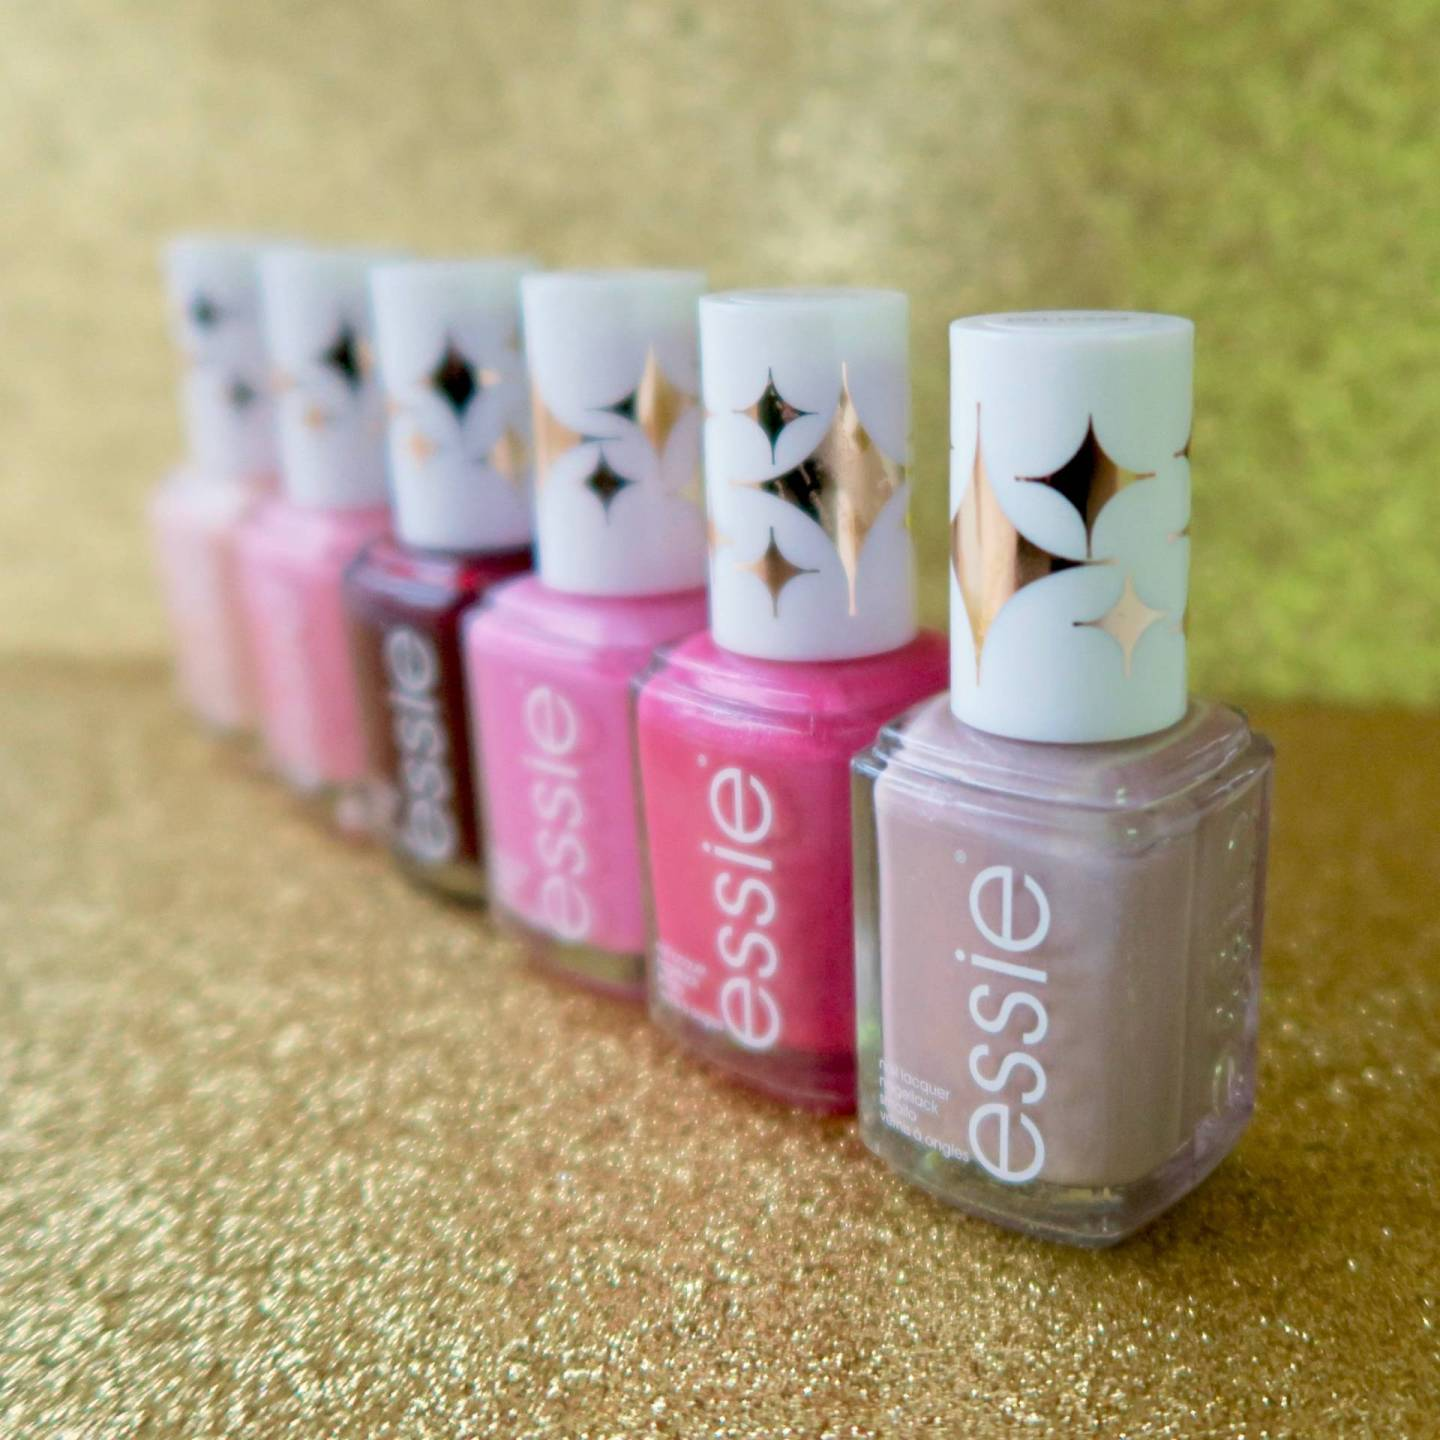 Essie Retro Revival 2017 Collection - Inspired by Las Vegas!